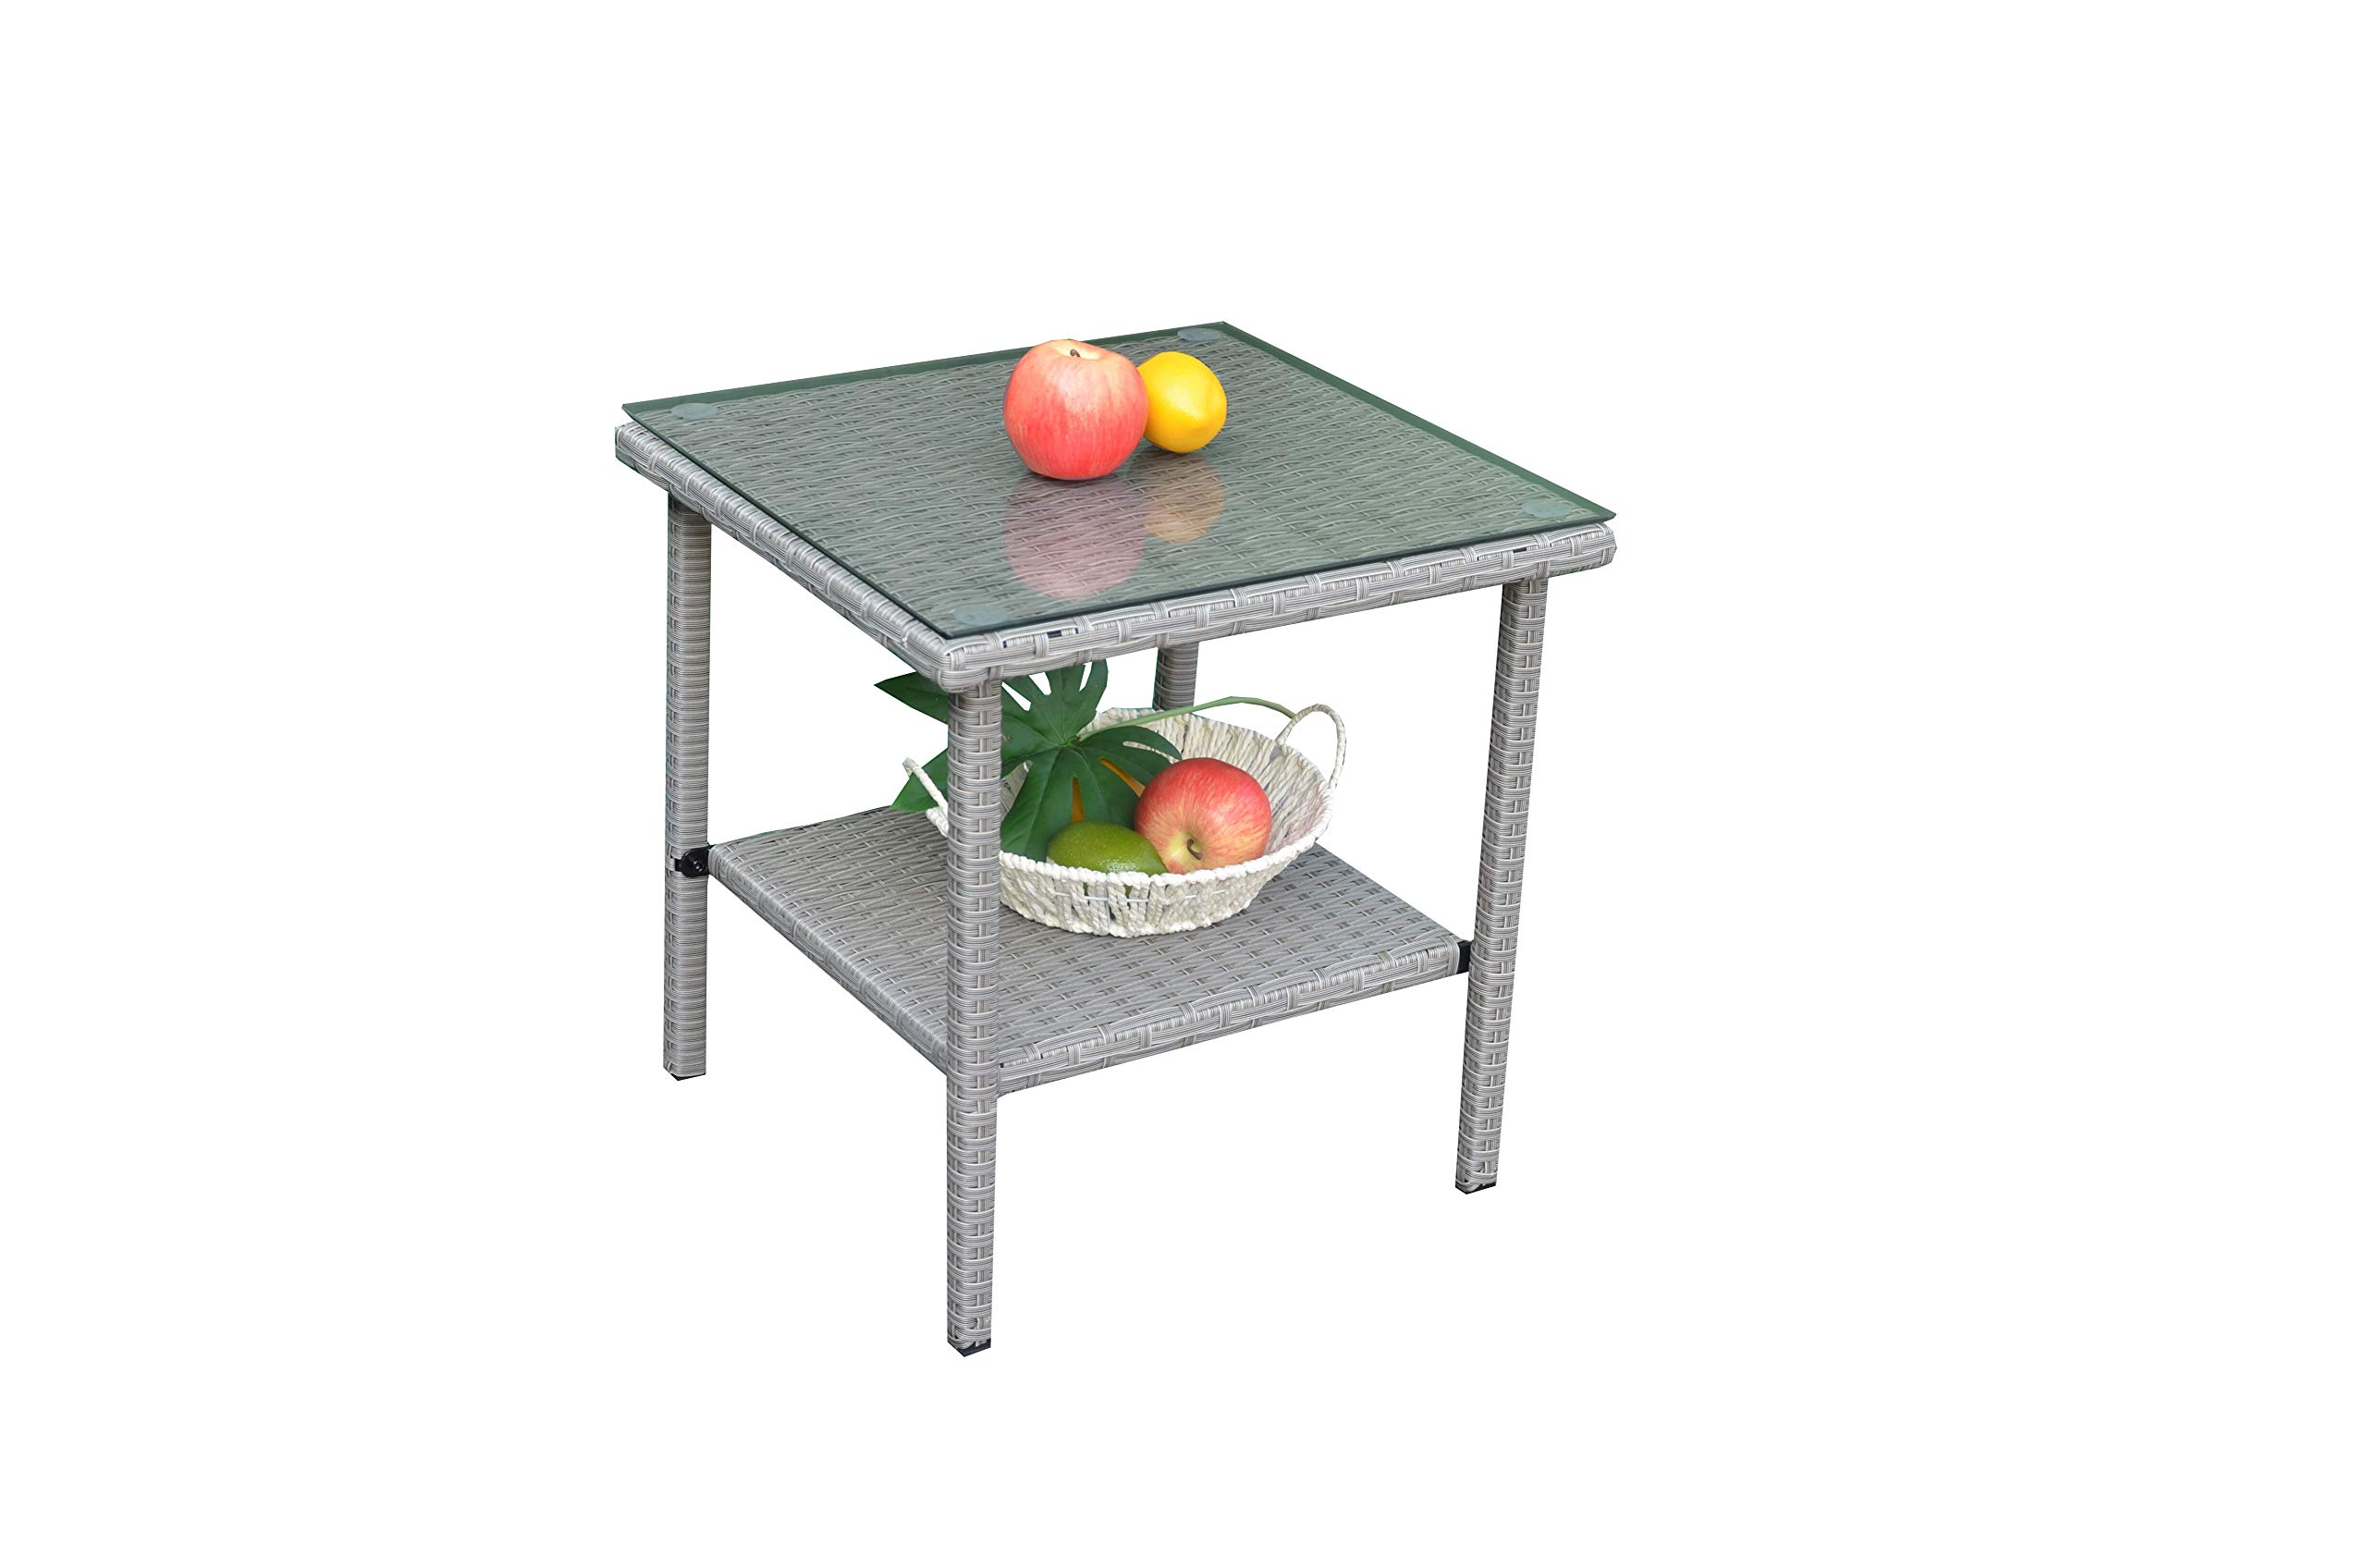 JETIME Patio Furniture Wicker Rattan Outdoor Coffee Side Table with Tempered Glass Top Indoor Garden Bistro Table (Silver)